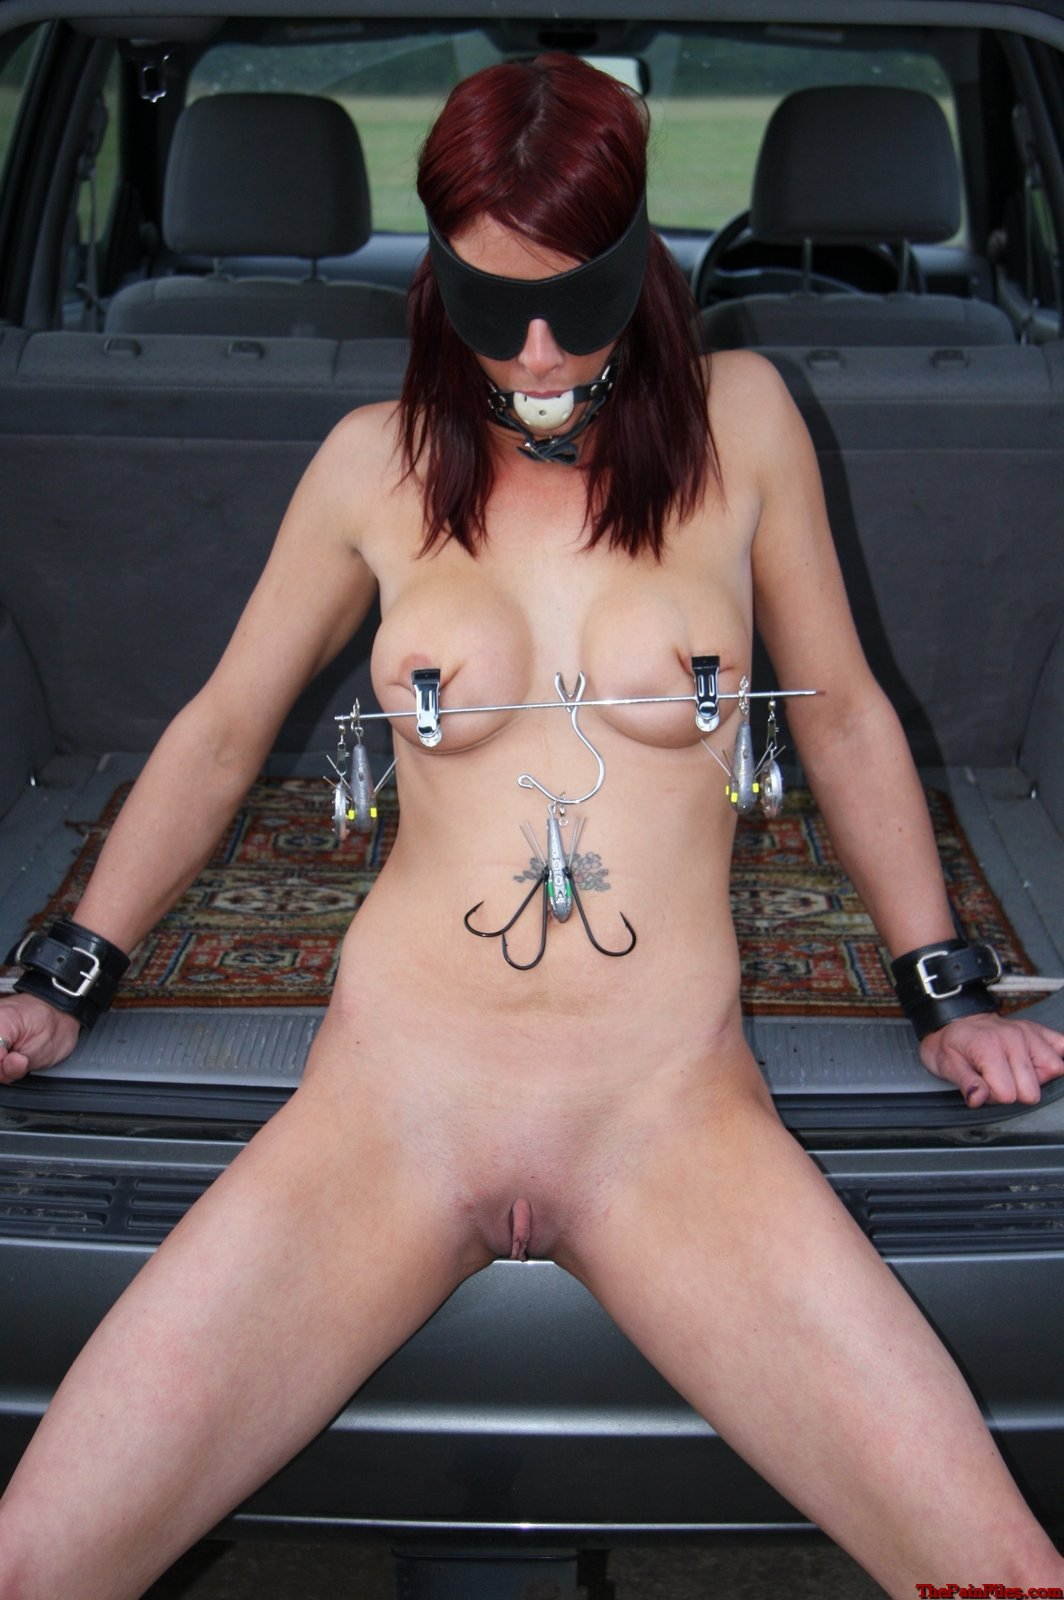 porn naked women in carpark